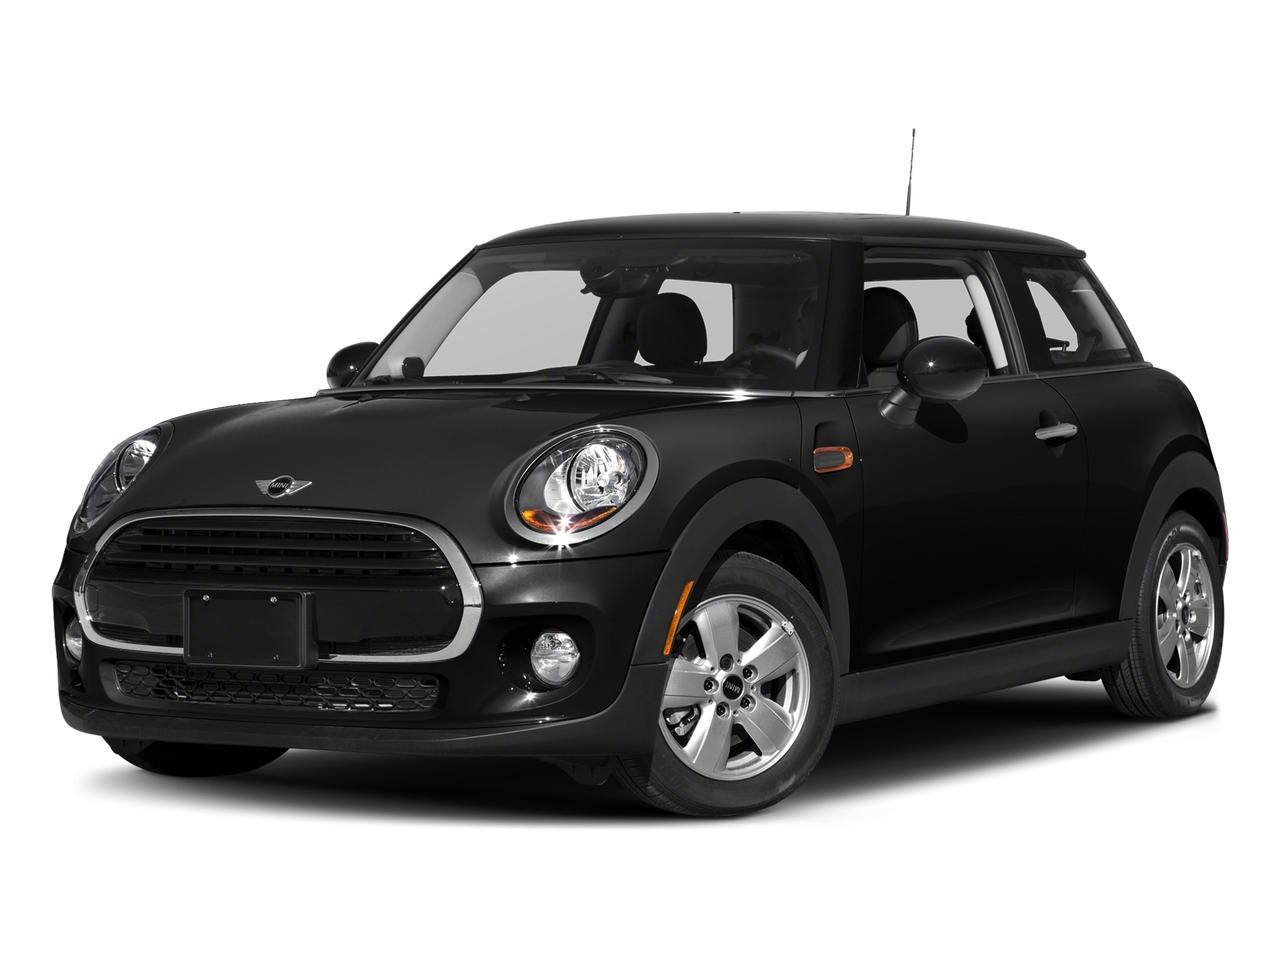 2018 MINI Cooper Signature Line Hardtop 2 Door Vehicle Photo in Pleasanton, CA 94588